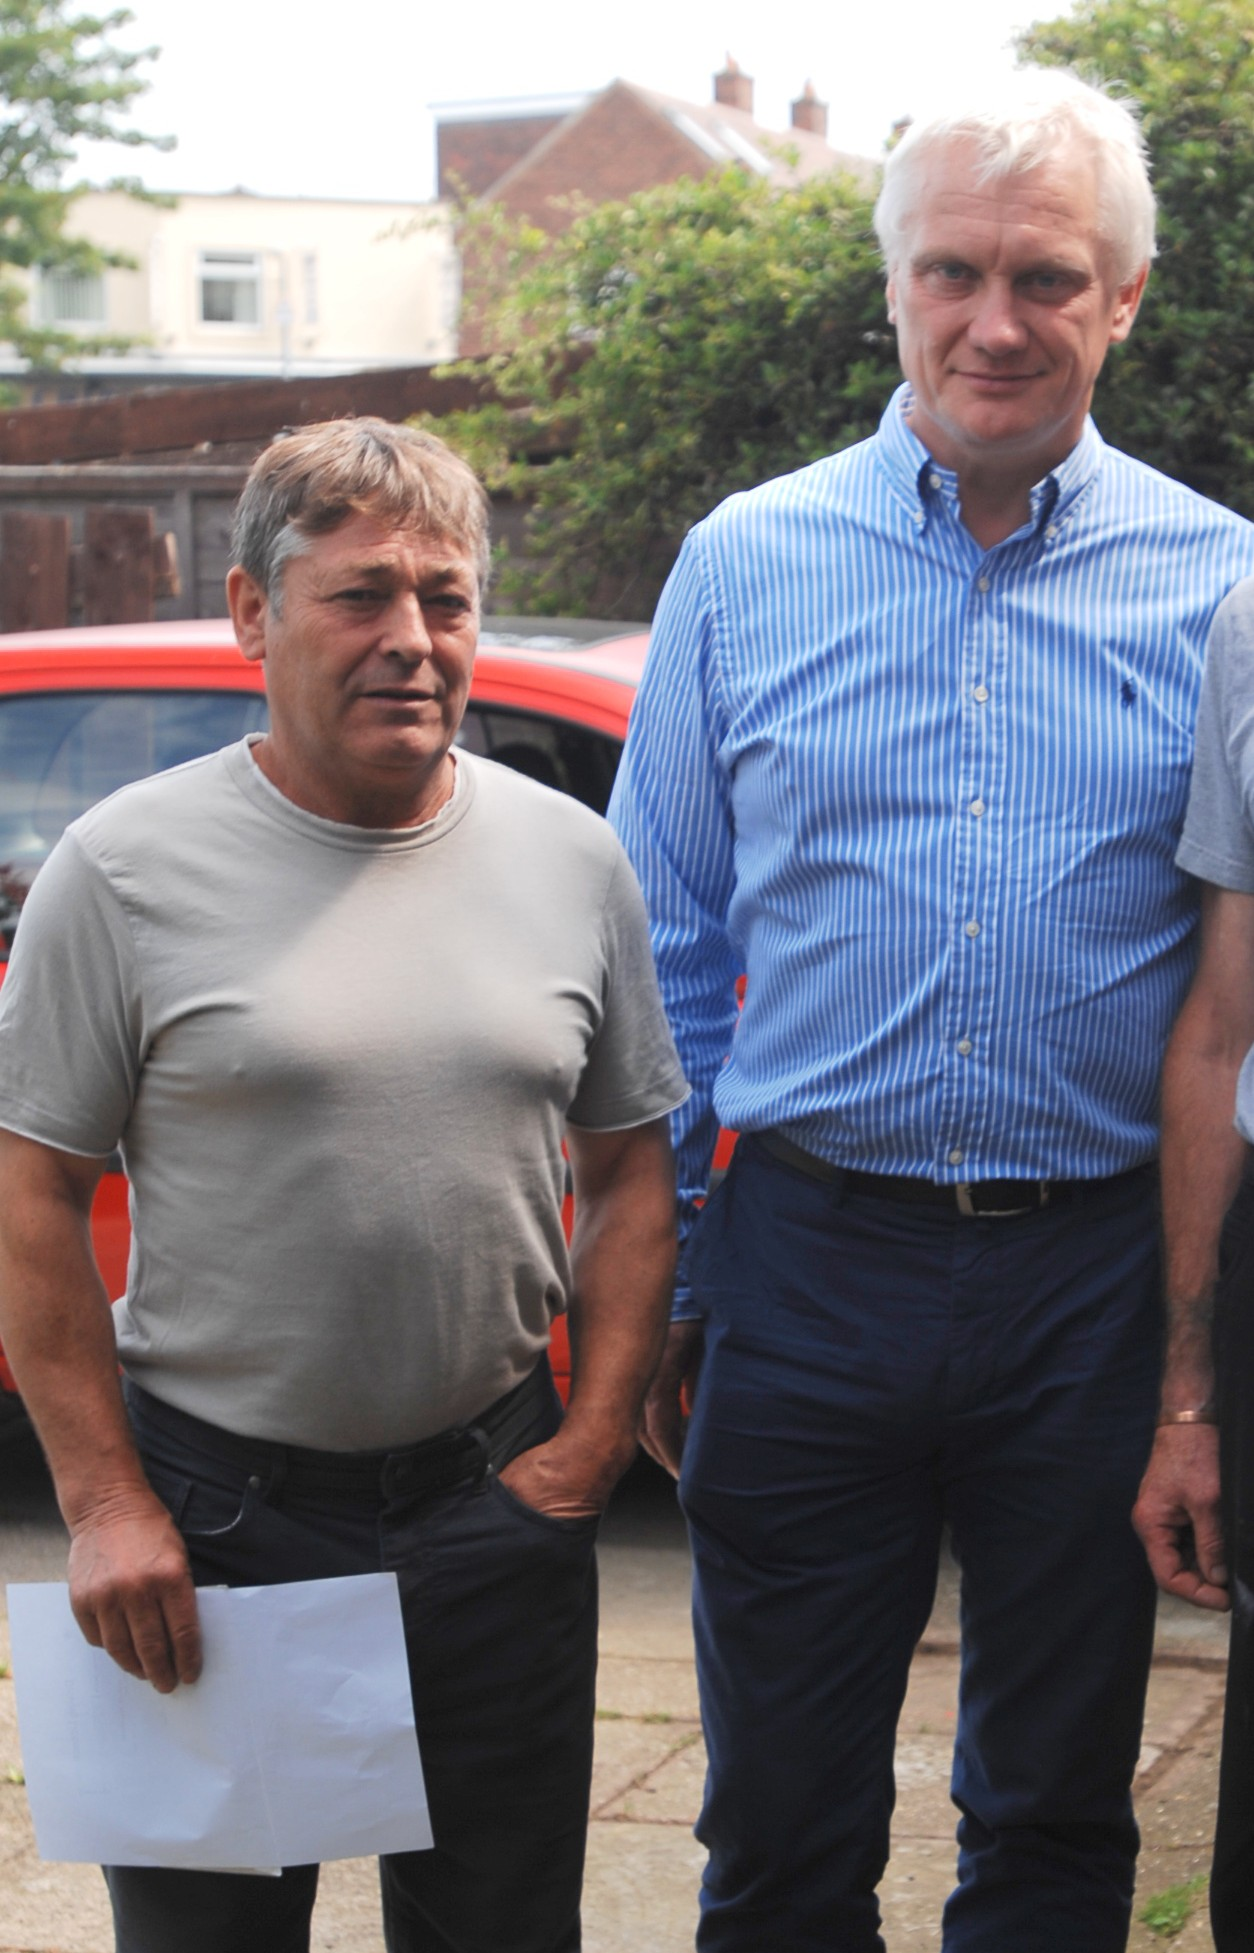 Geoff Bullingham (left) with MP Graham Stuart (right)